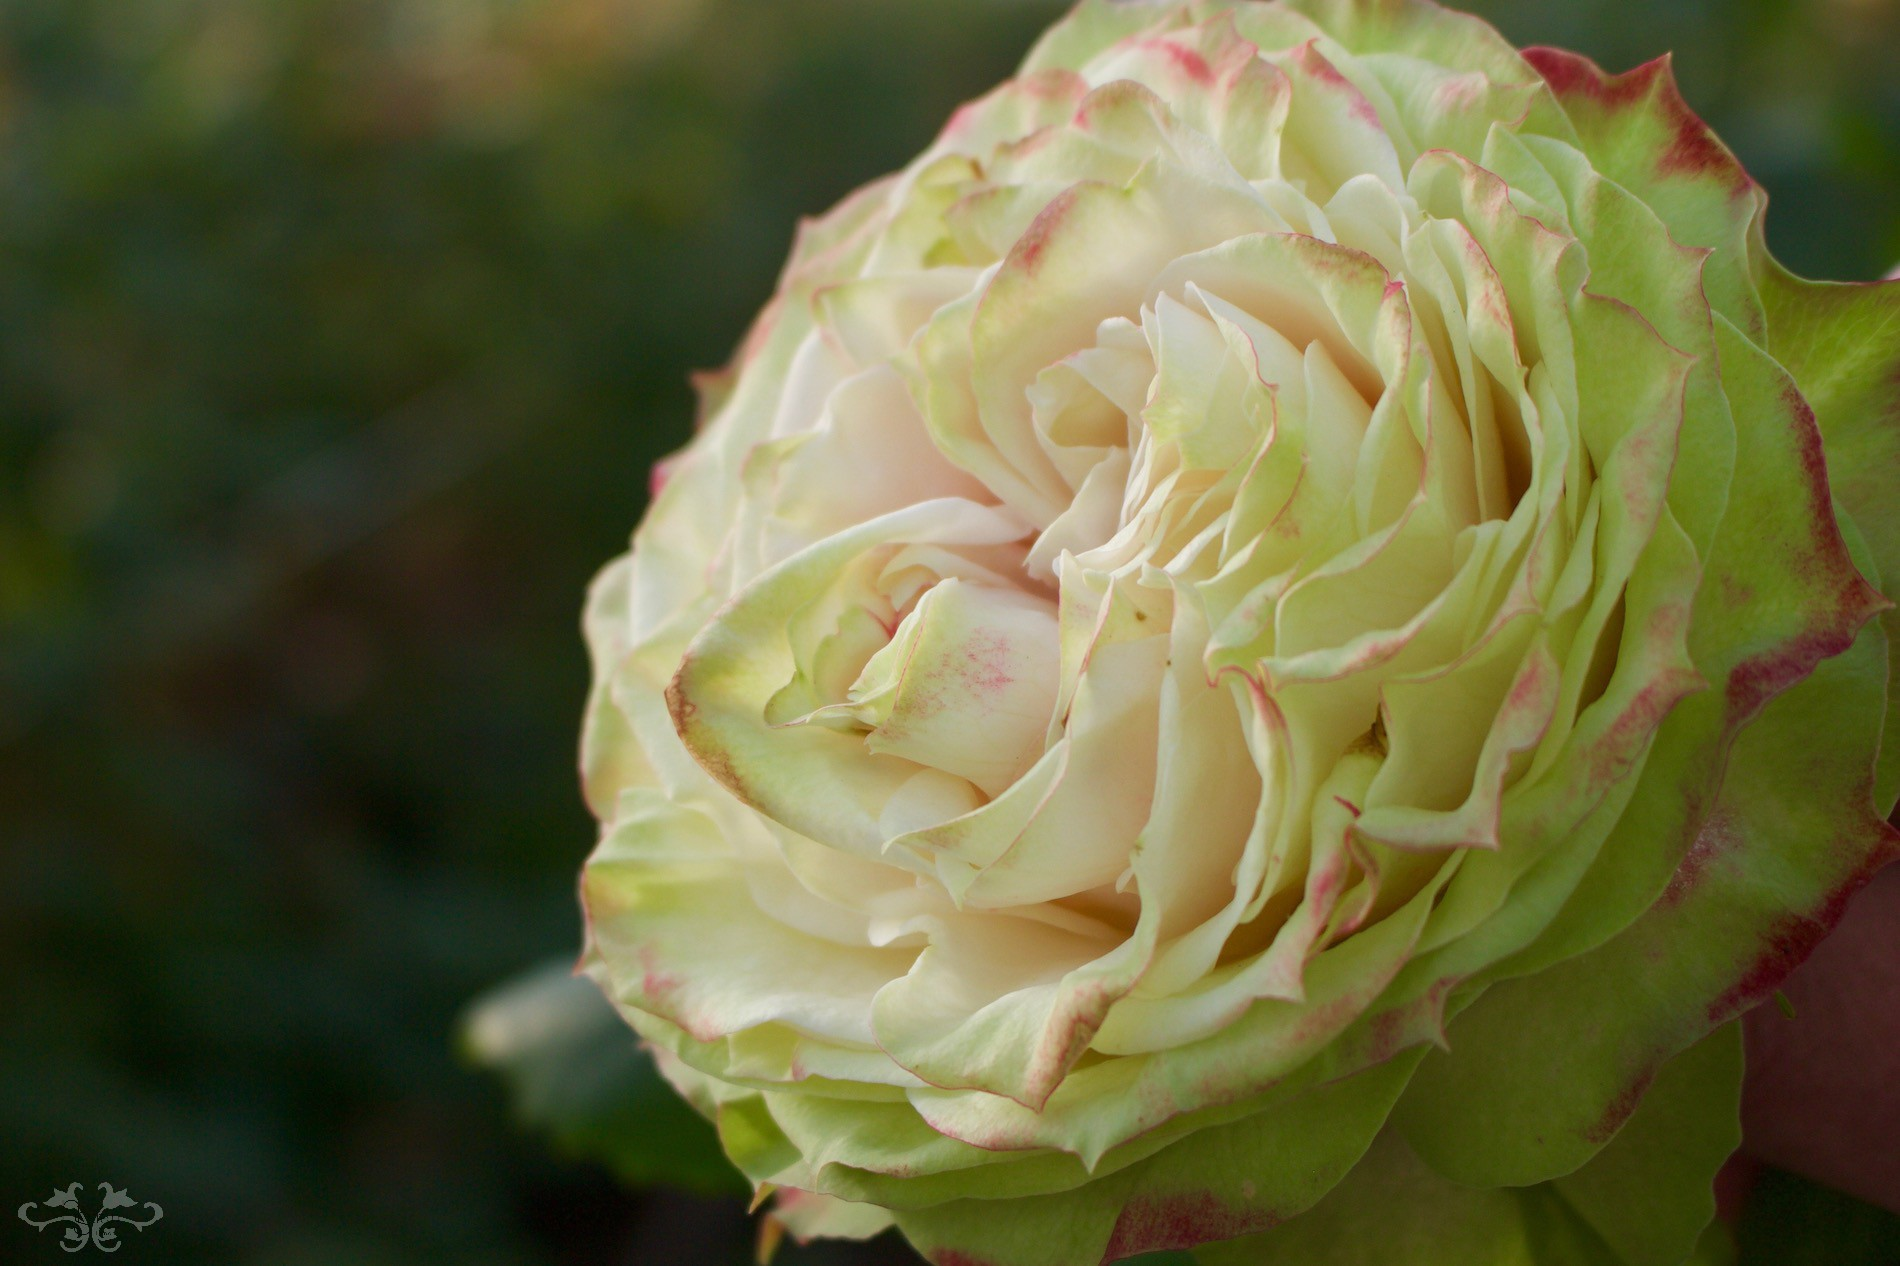 The exquisite Applejack Rose available at Neill Strain Floral Couture